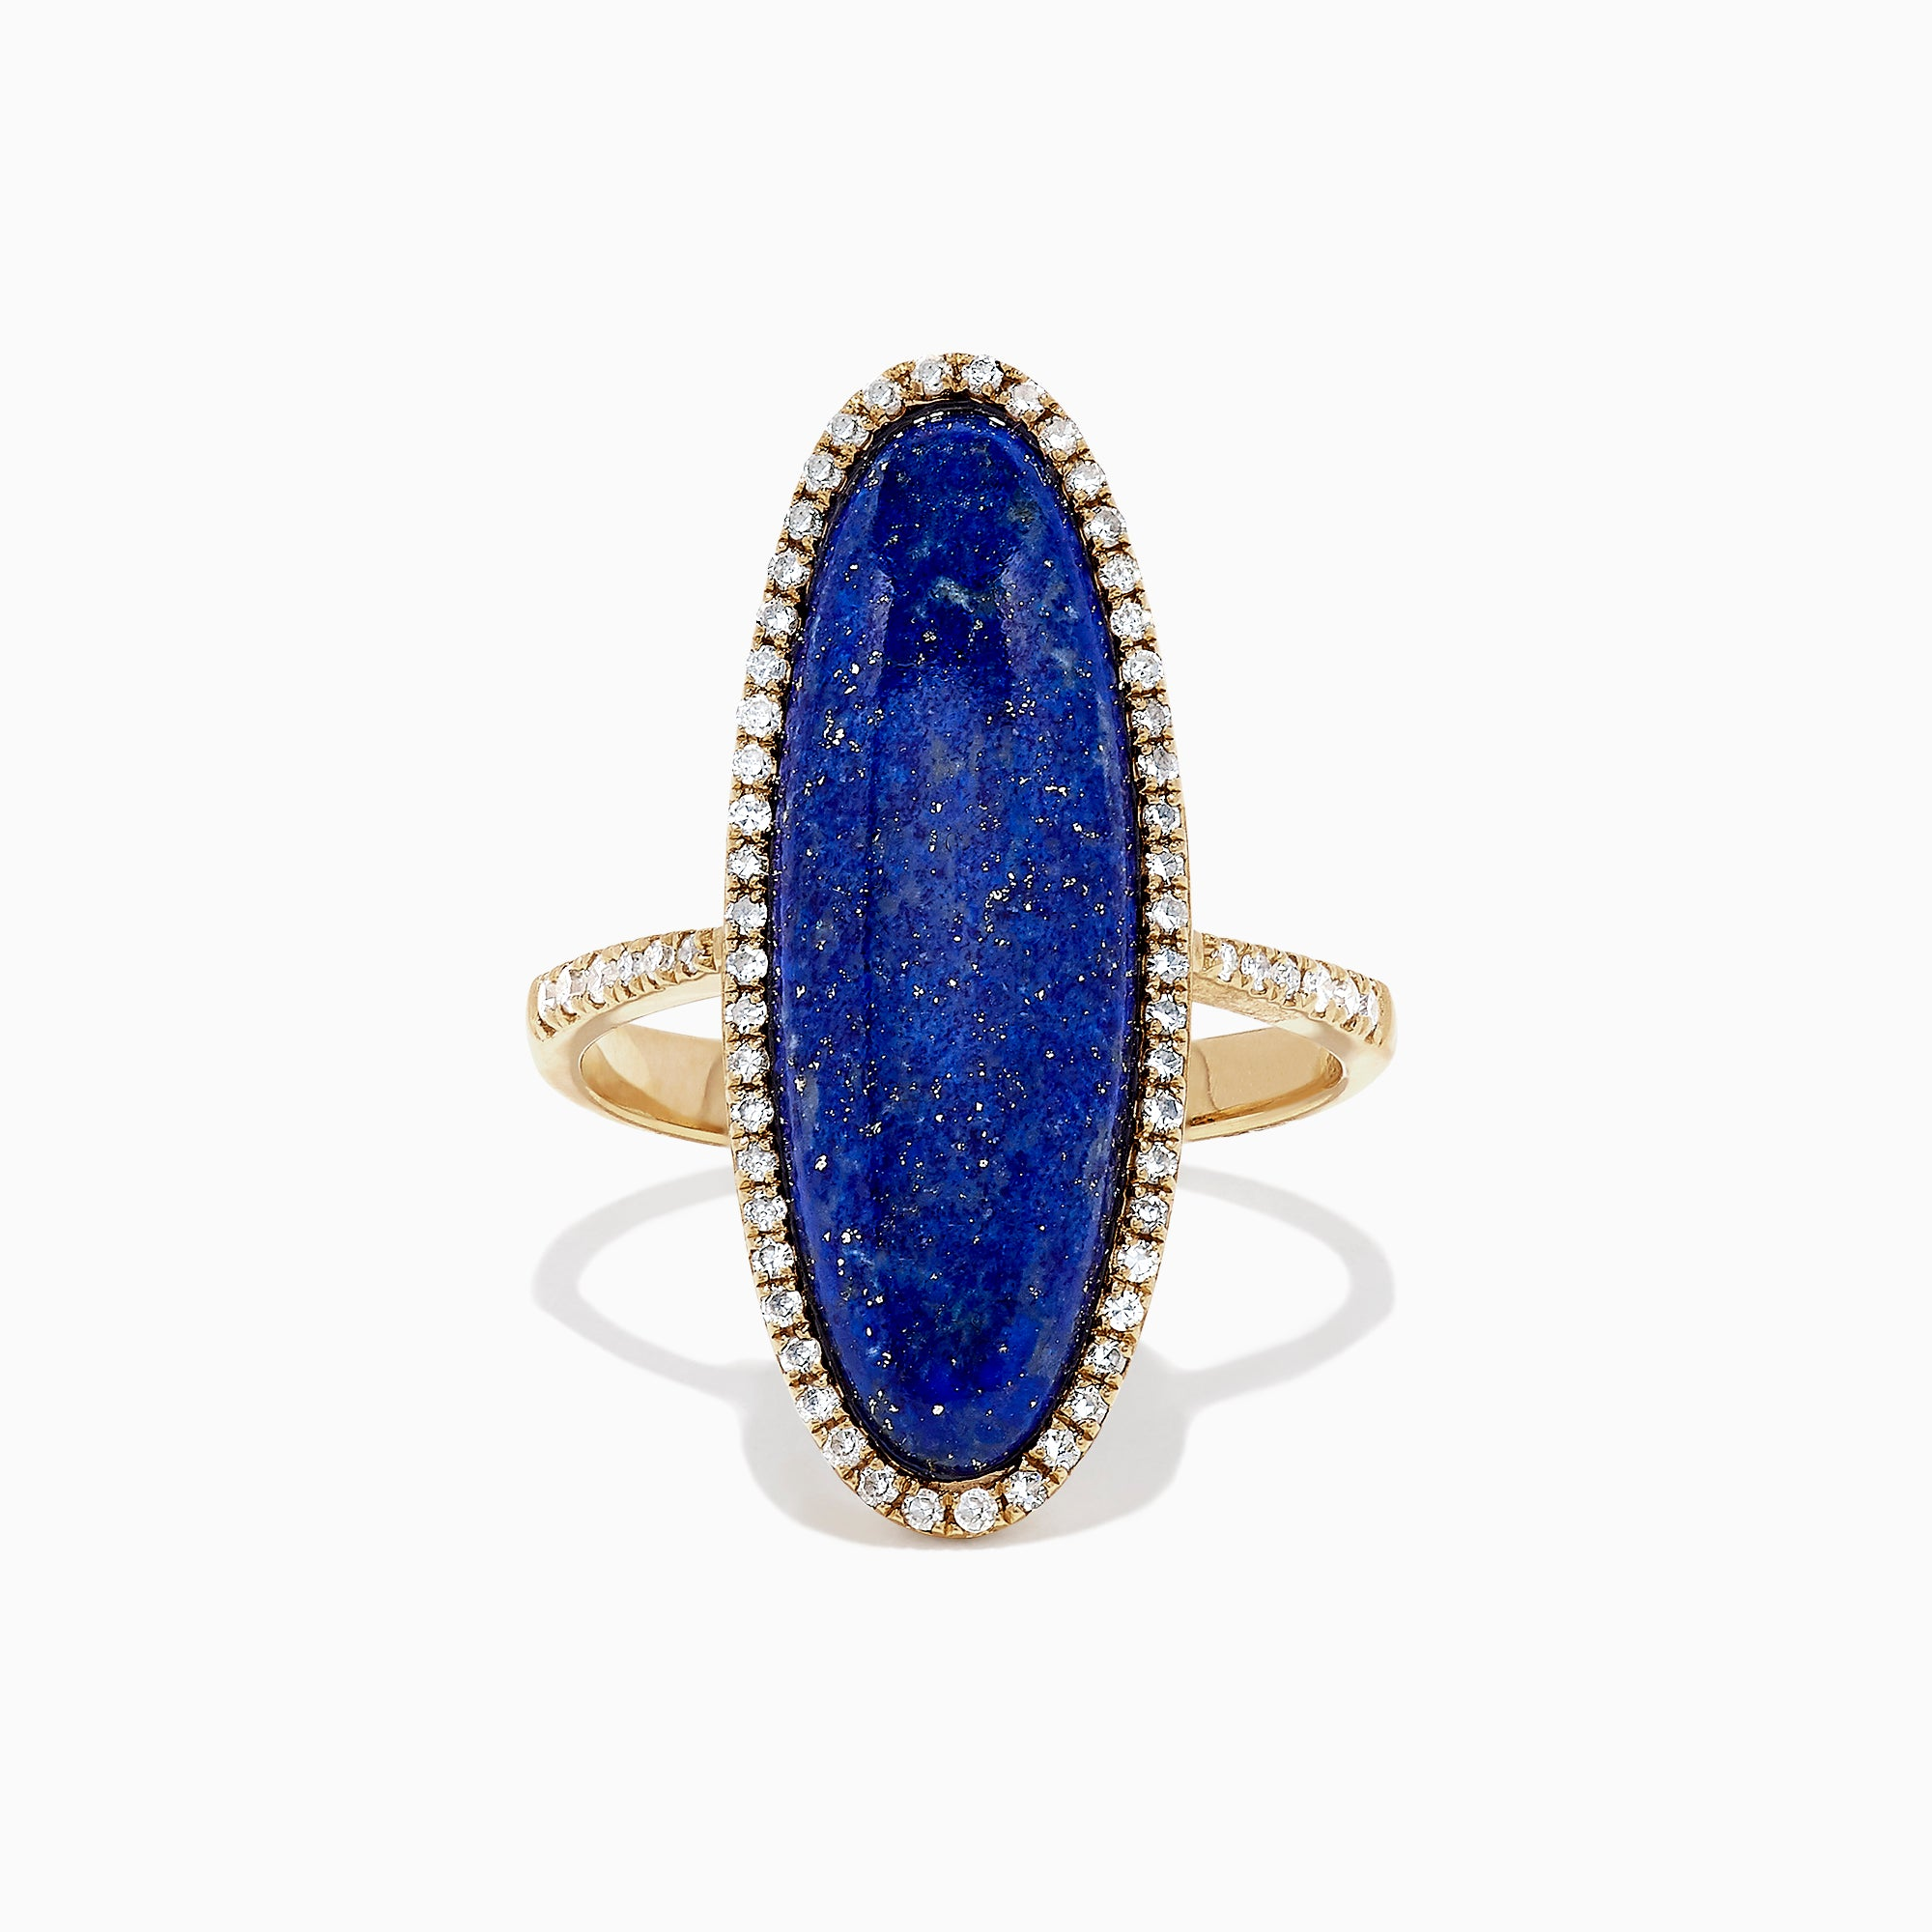 Effy 14K Yellow Gold Lapis Lazuli and Diamond Ring, 6.27 TCW